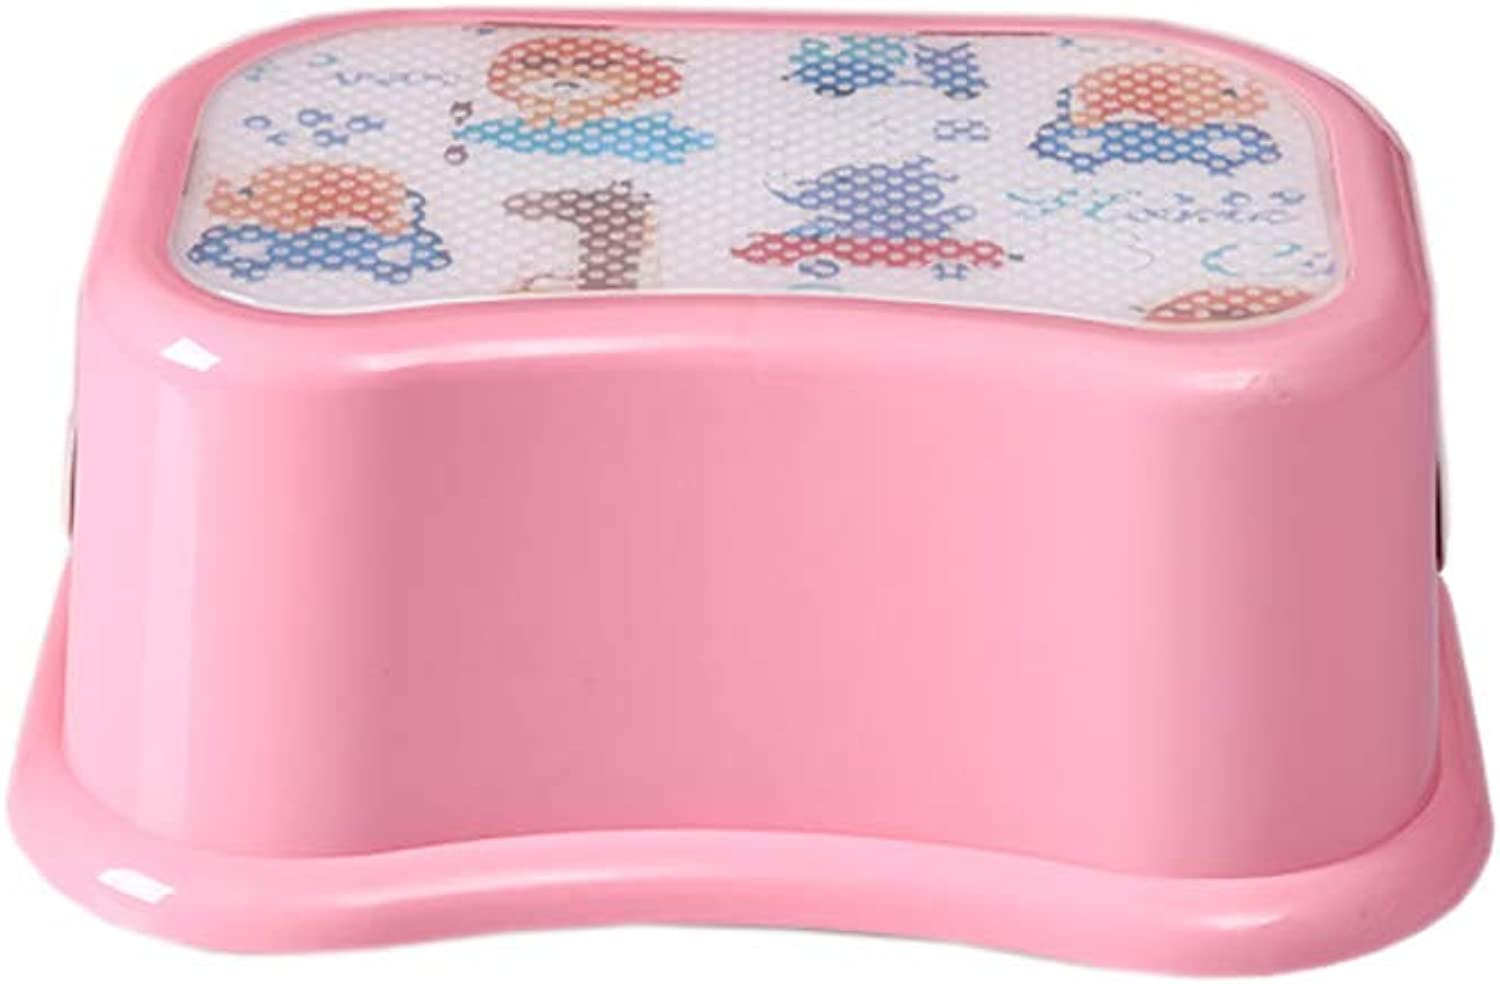 Kids Best Friend Kids Pink Step Stool, Great for Potty Training and Toy Room Gift